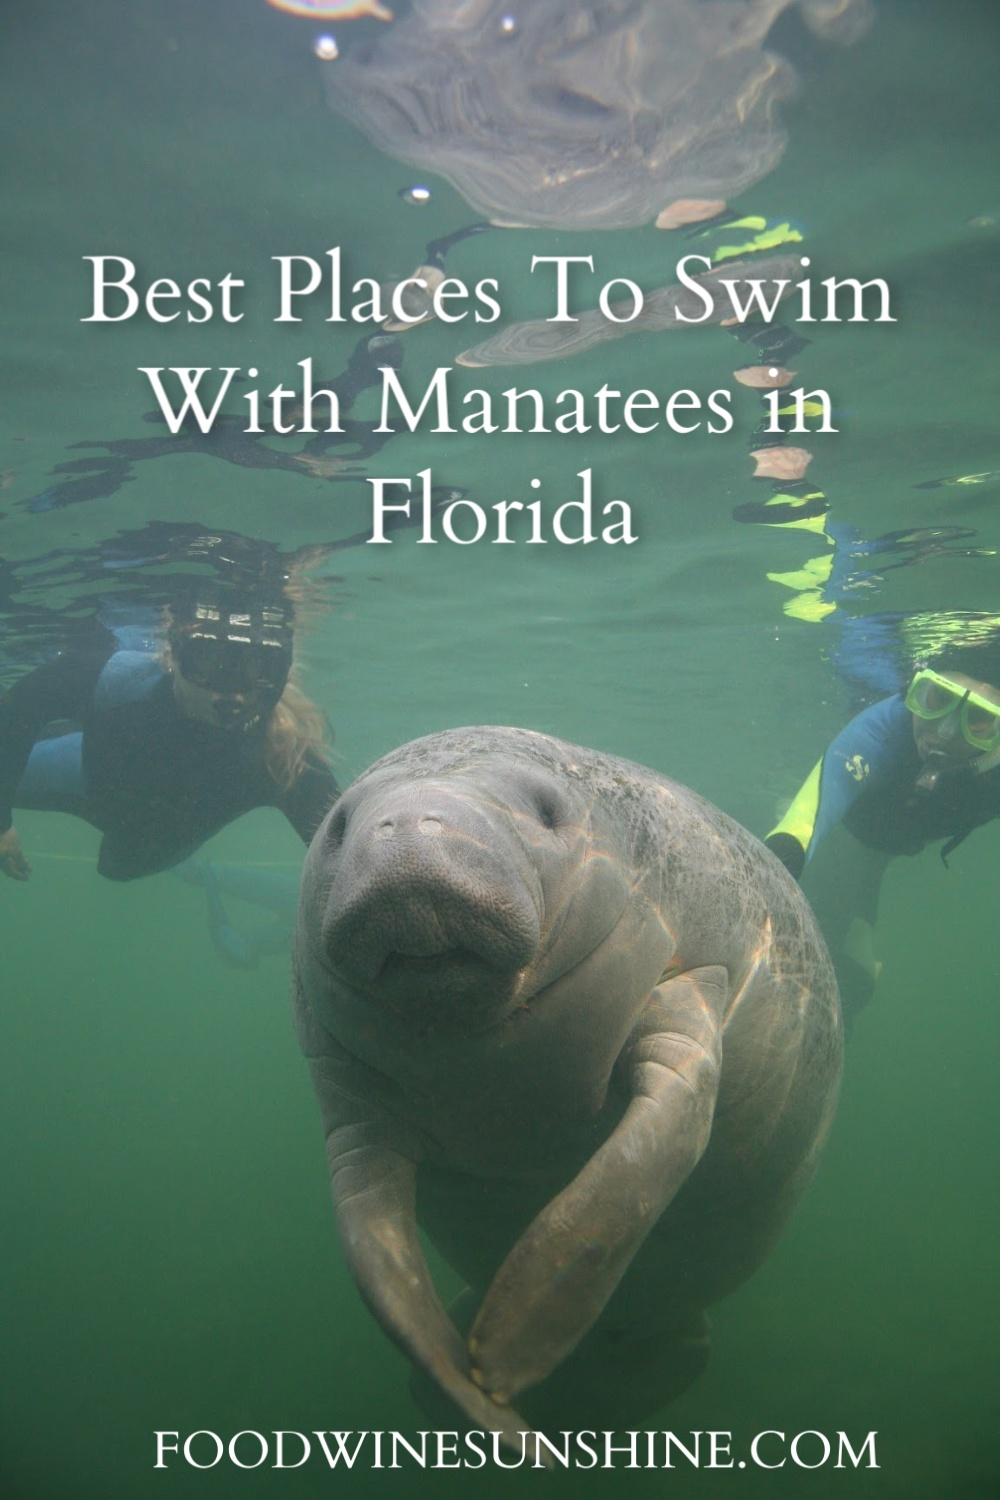 Best Places To Swim With Manatees in Florida